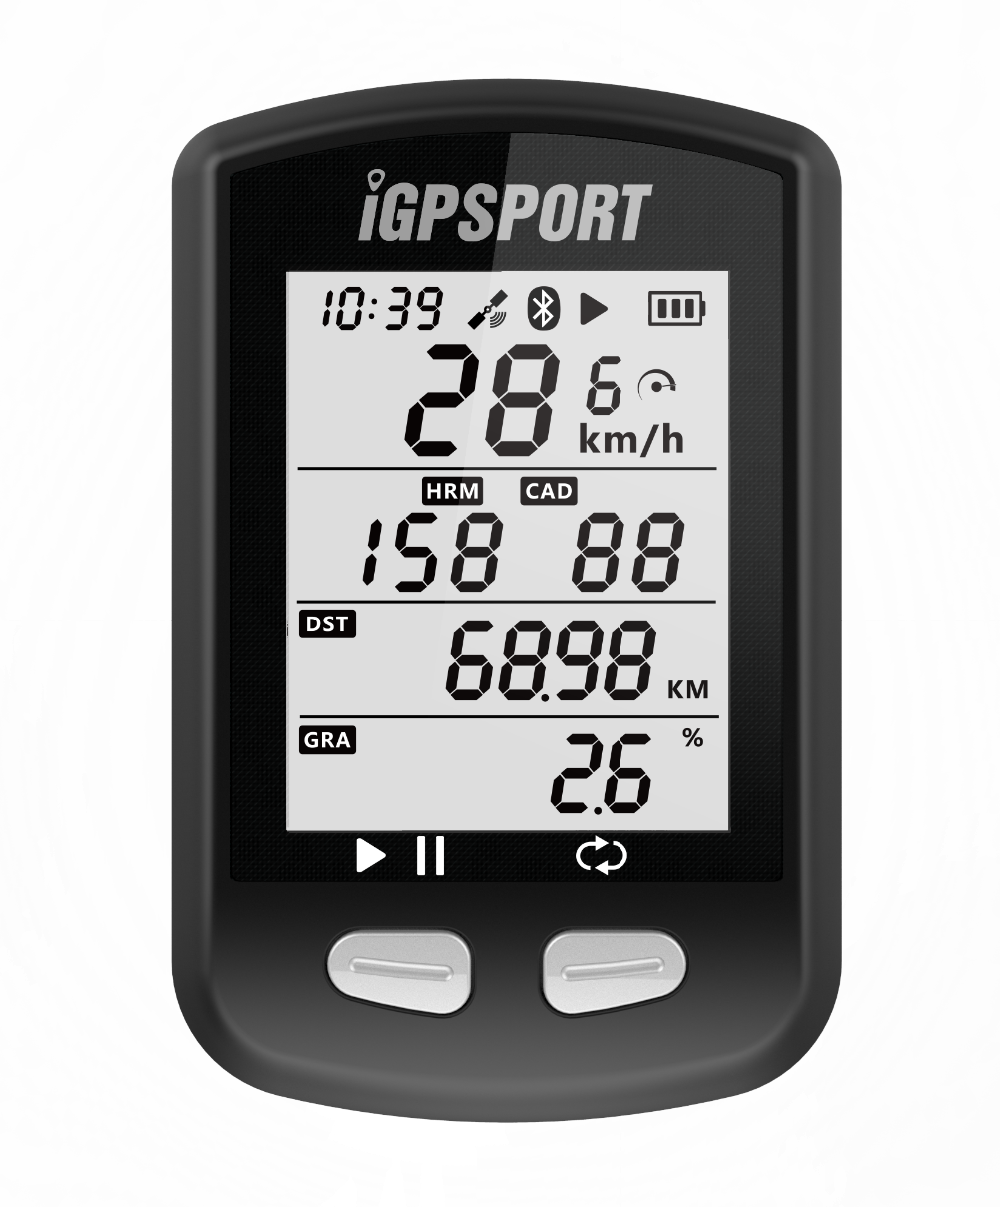 Garmin Cycle Computer >> Garmin Edge Gps Bike Computer For Bikes Cycling Mtb Cycle Computer